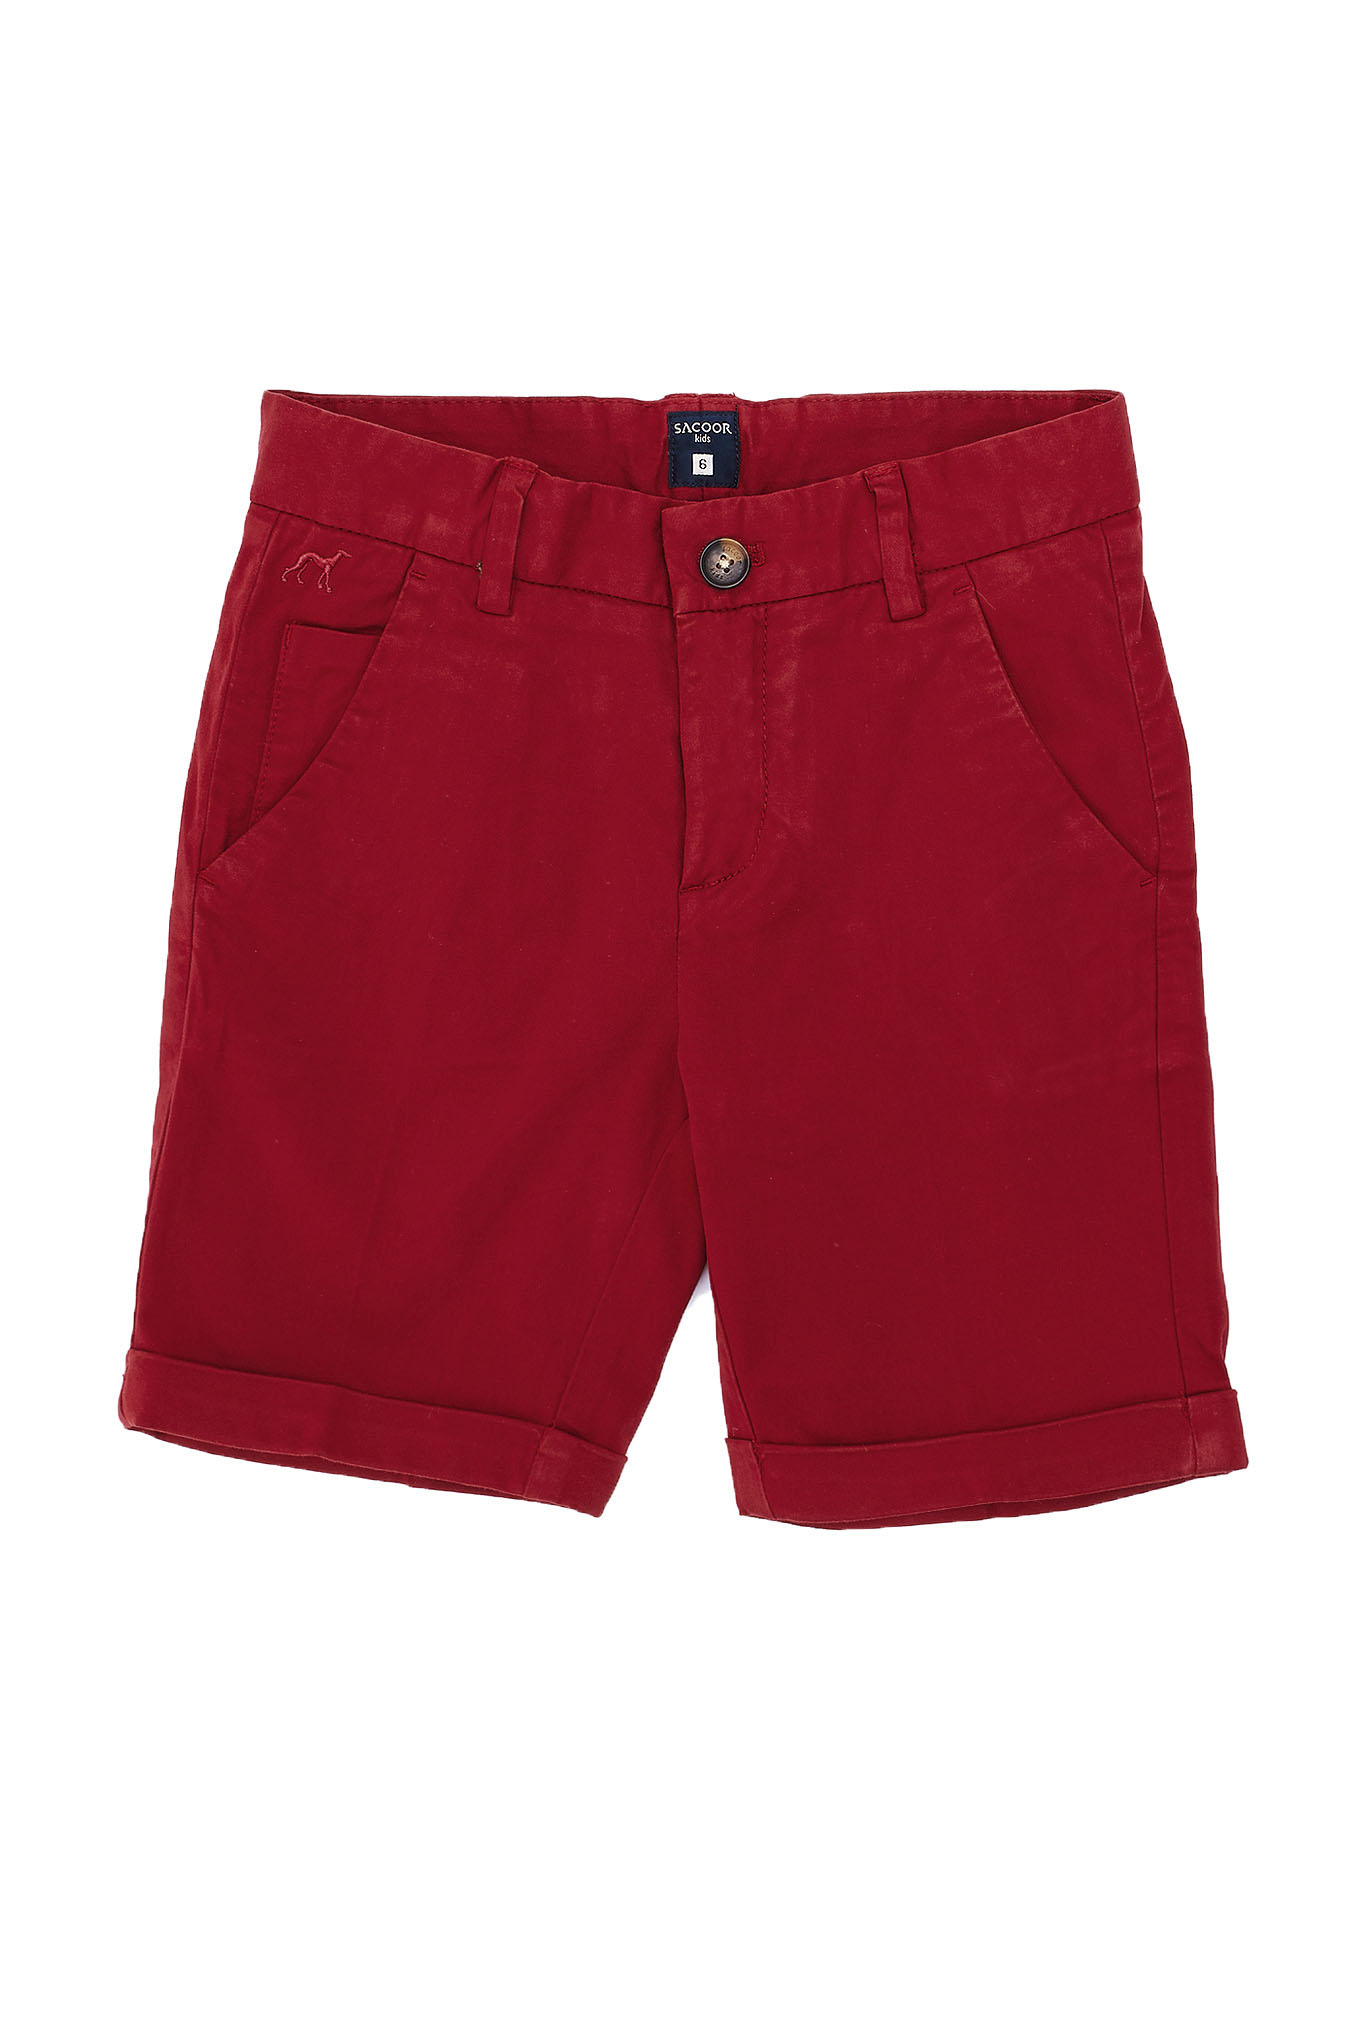 Bermuda Red Sport Boy